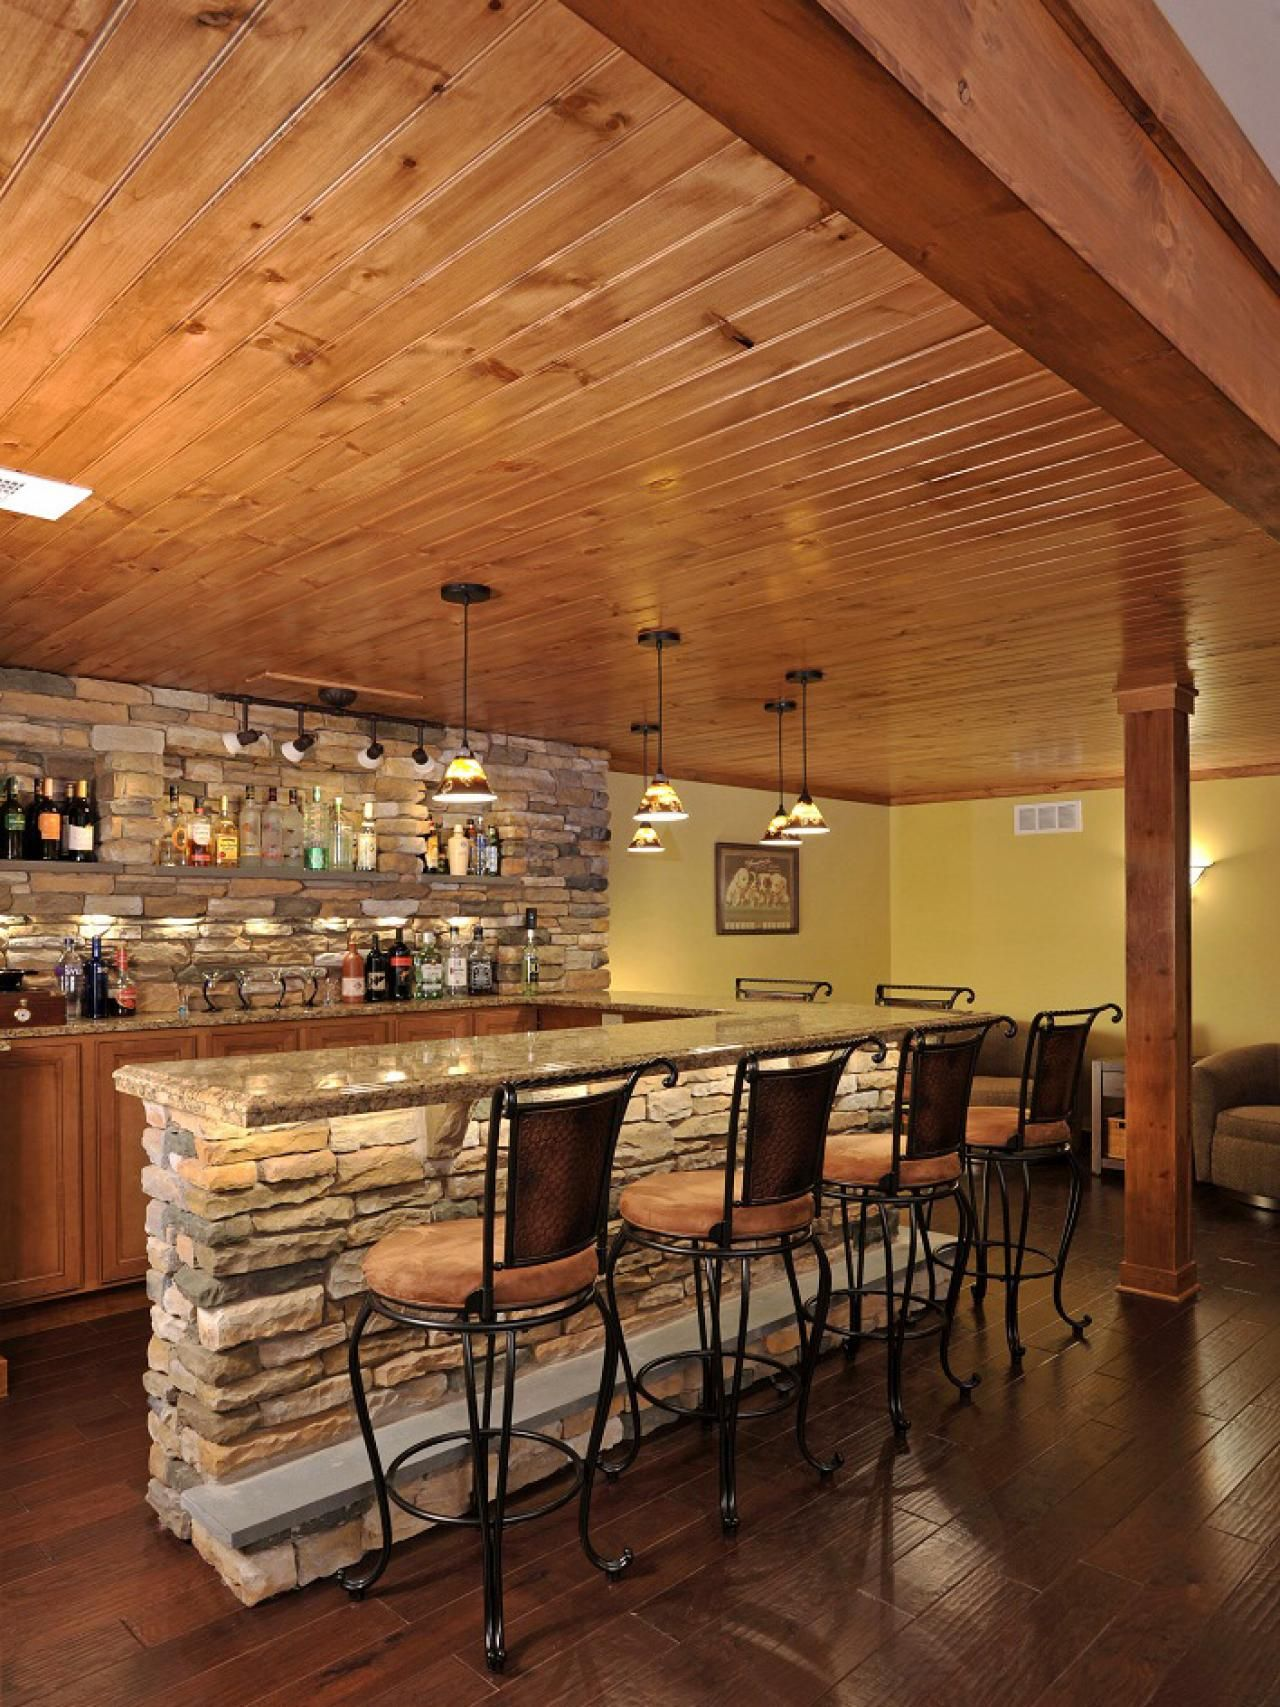 Basement Bar Ideas and Designs: Pictures, Options & Tips | Pinterest ...